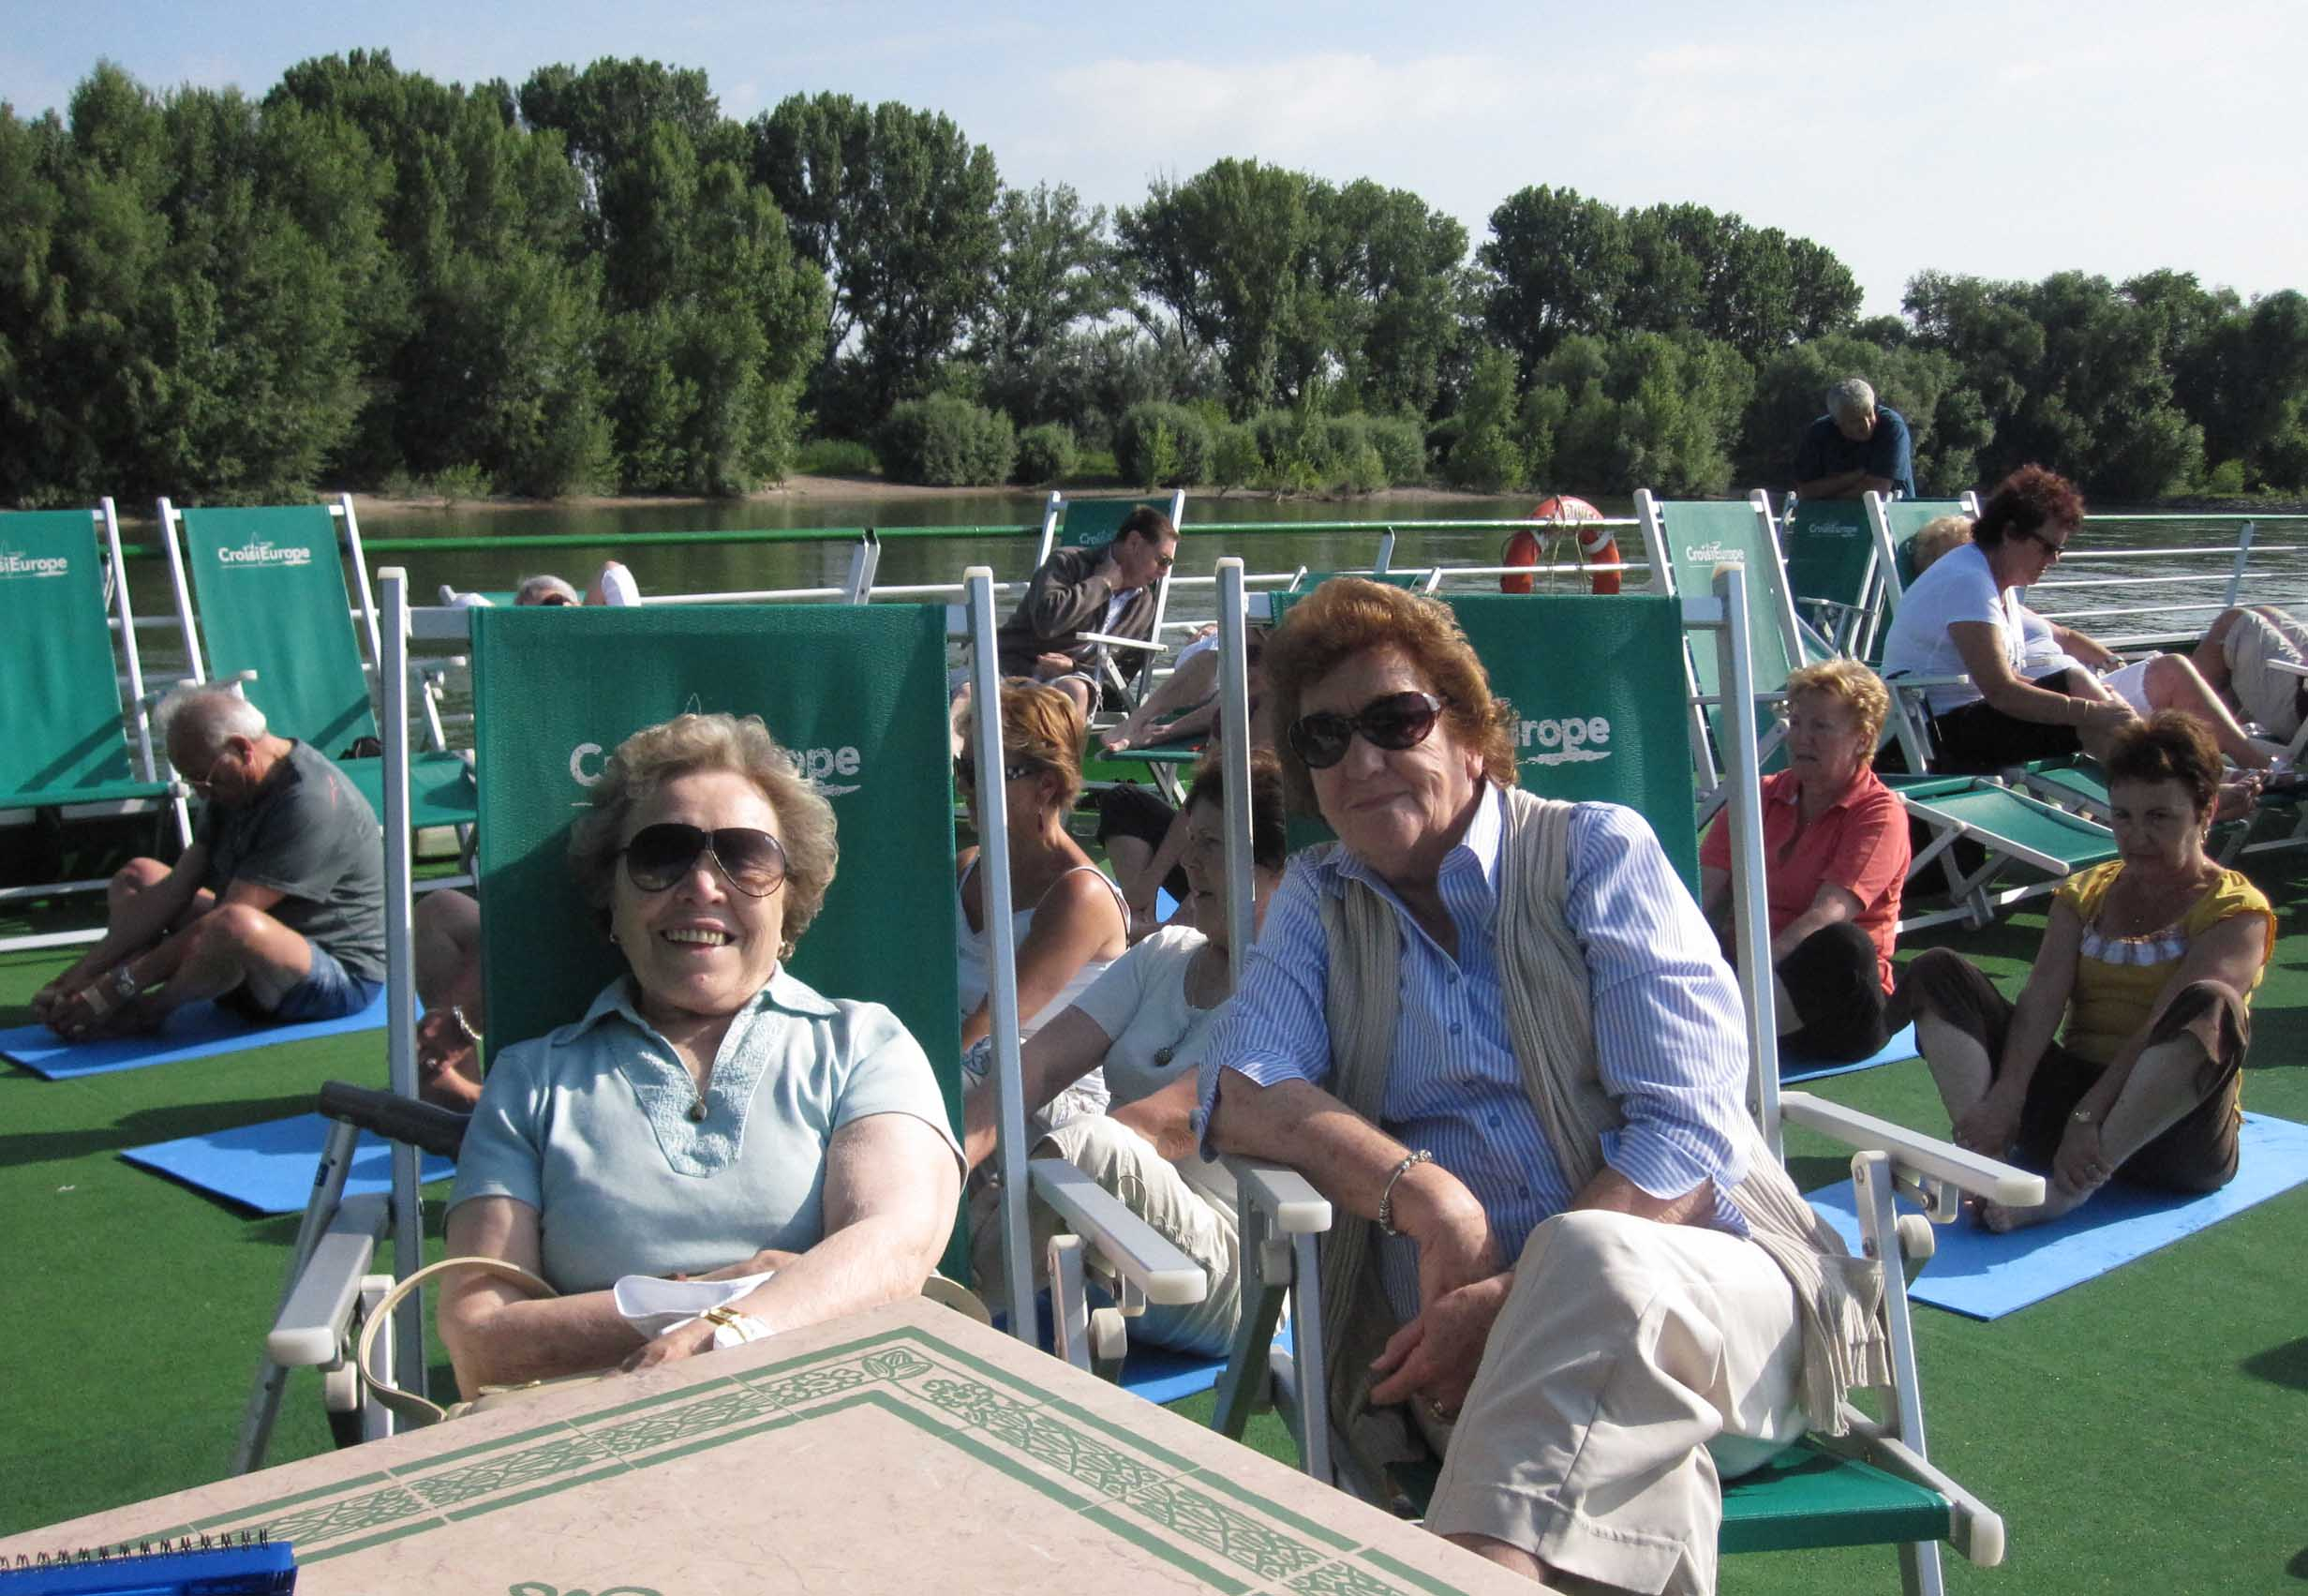 Two ladies in deck chairs on a boat on a river